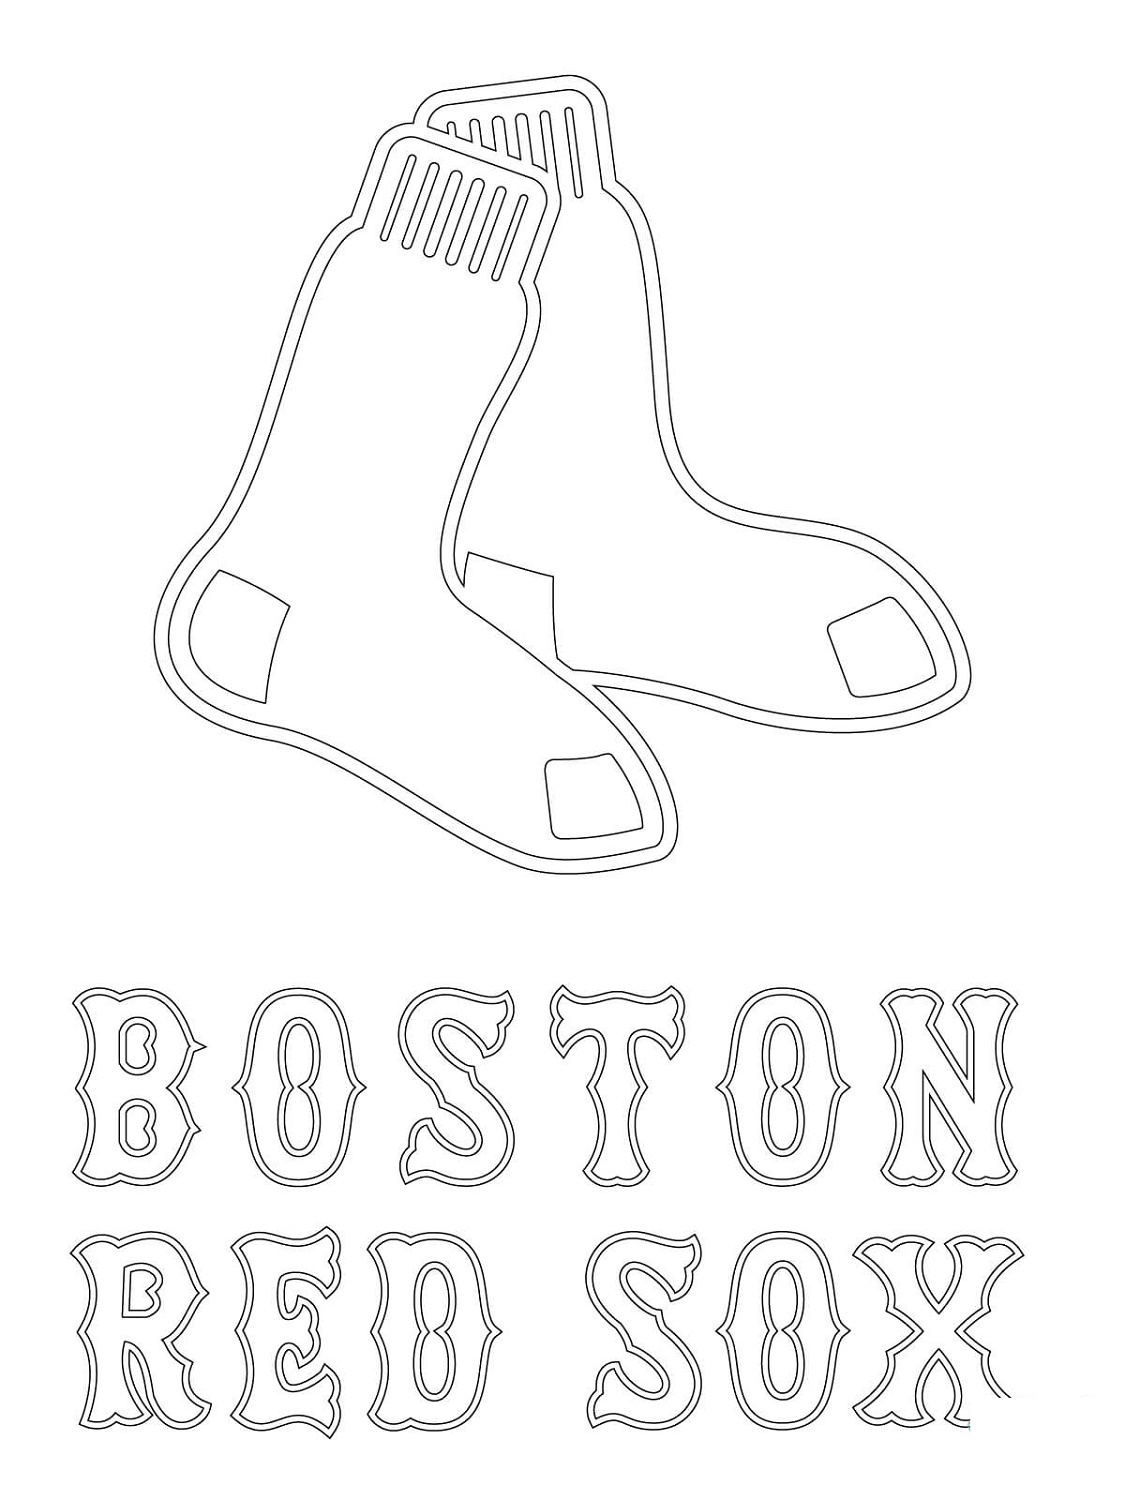 Red Sox Coloring Pages Printable